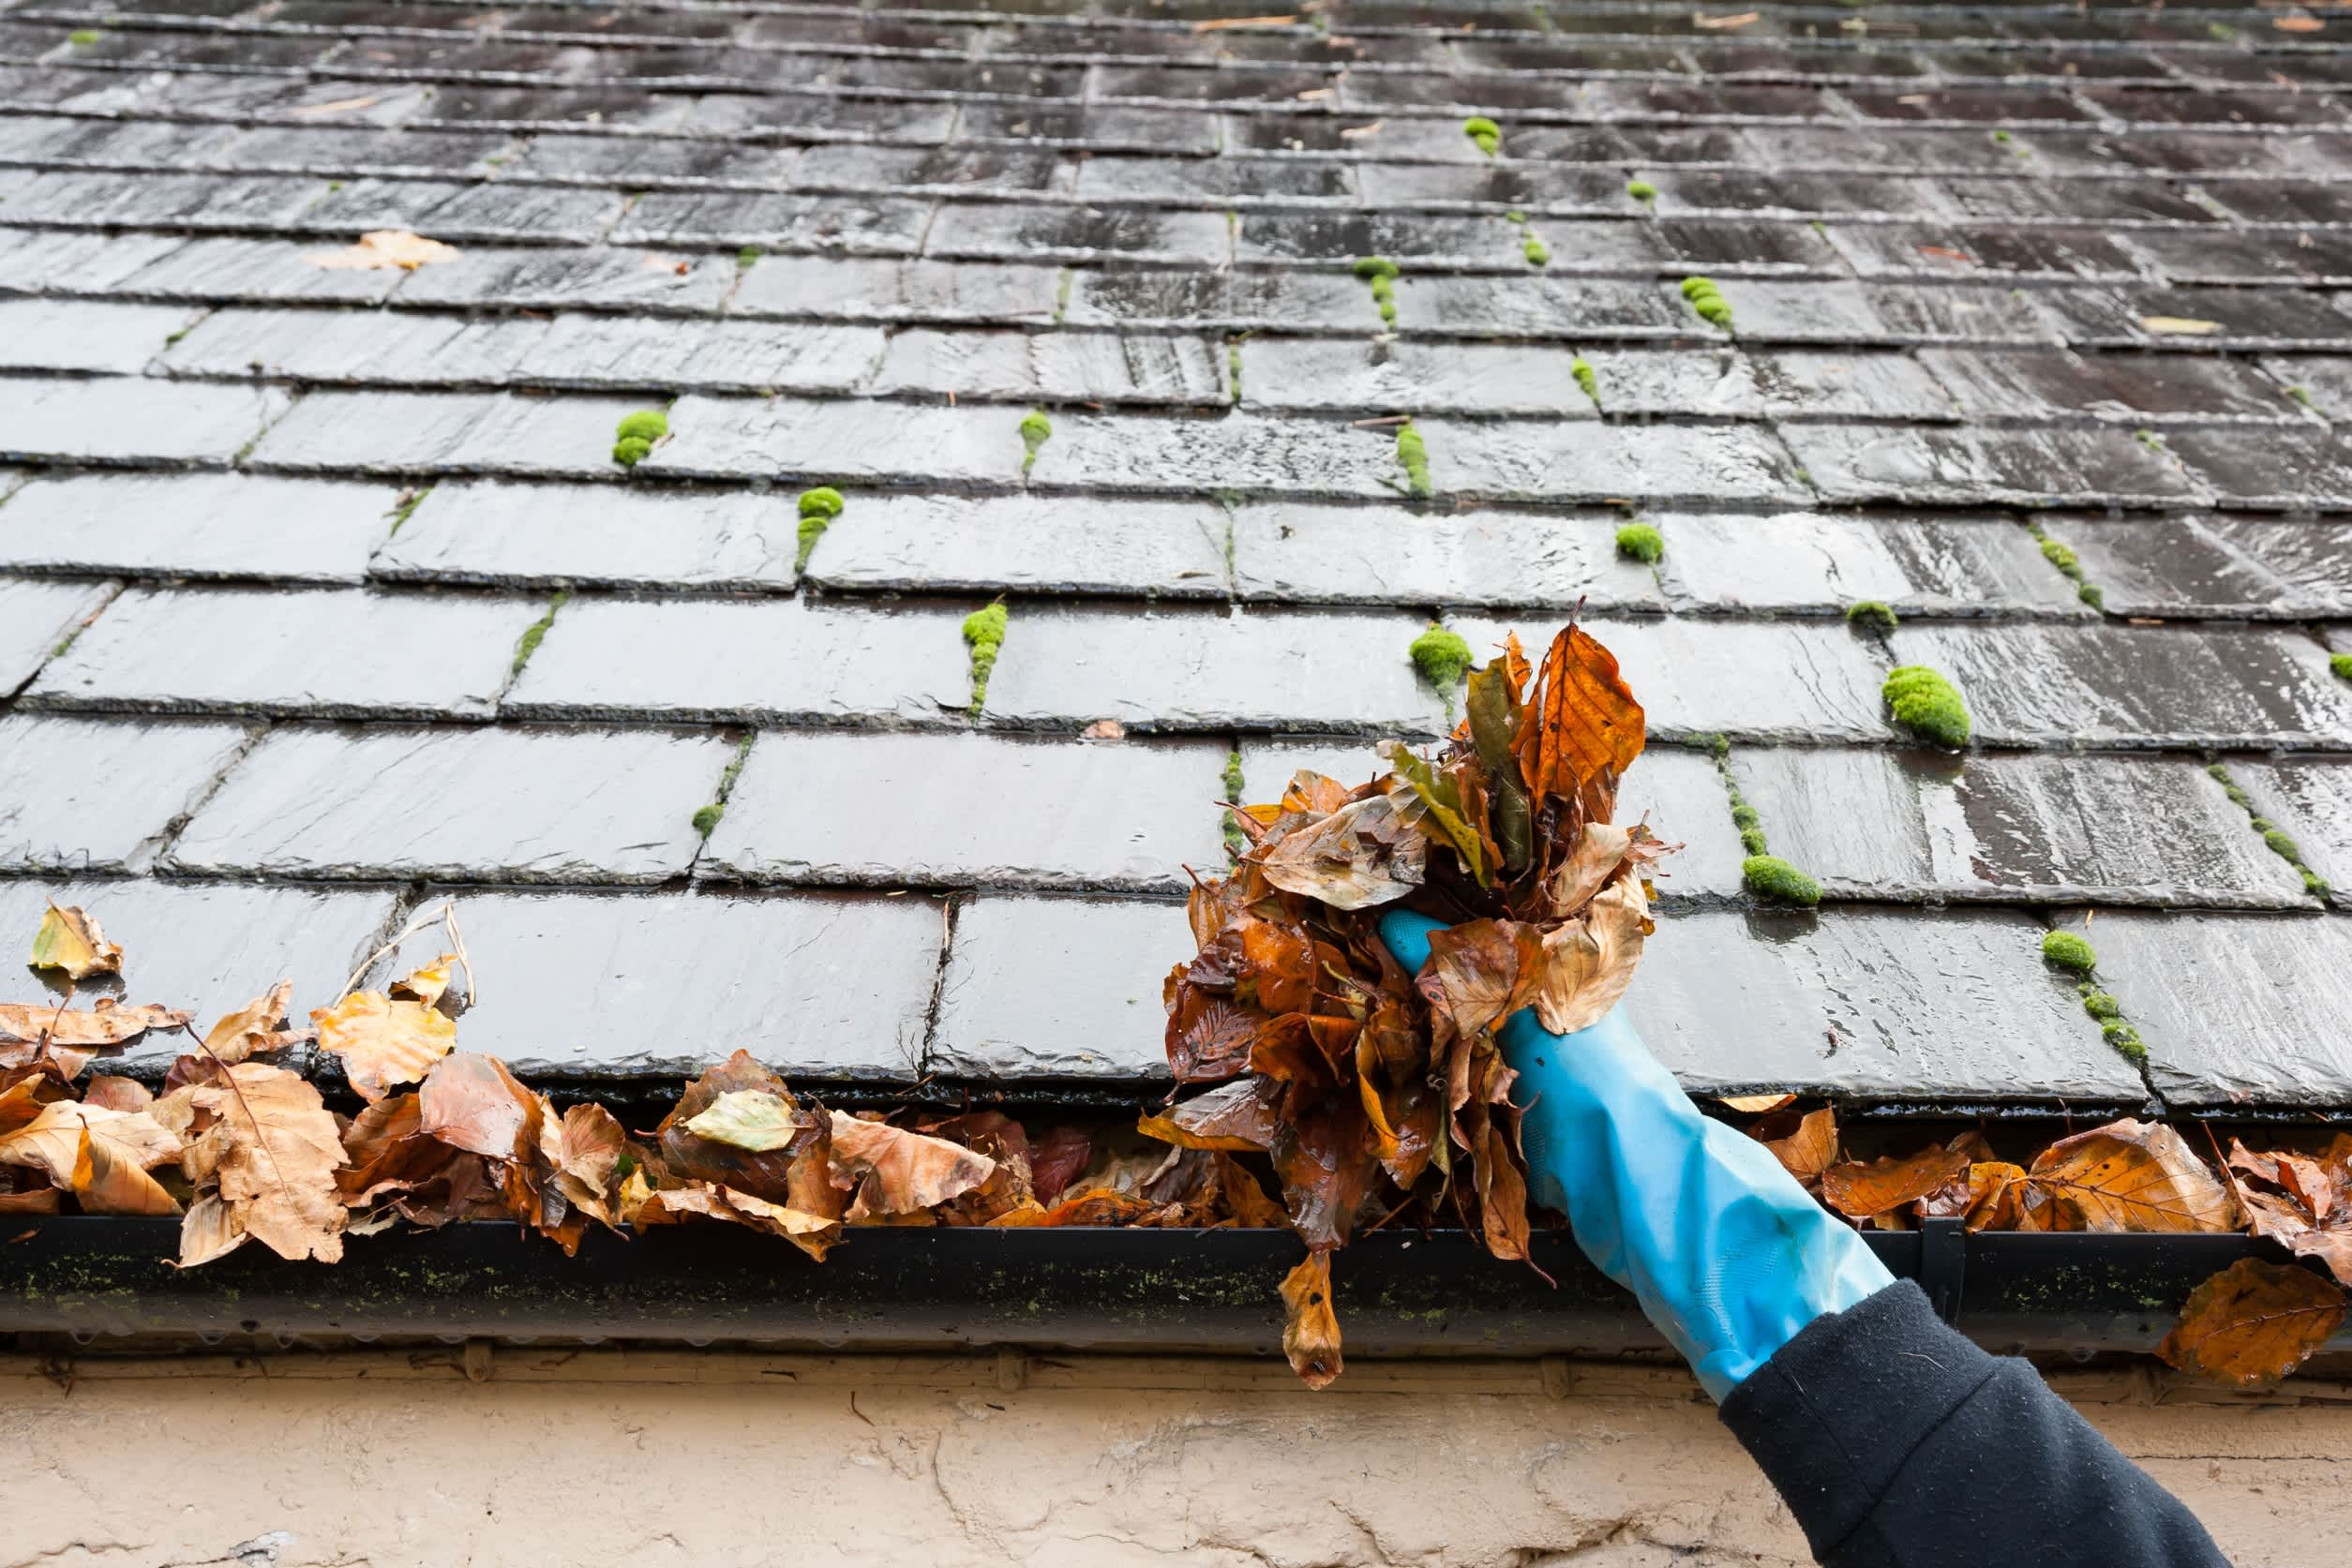 Cumbria Gutter Cleaning Services